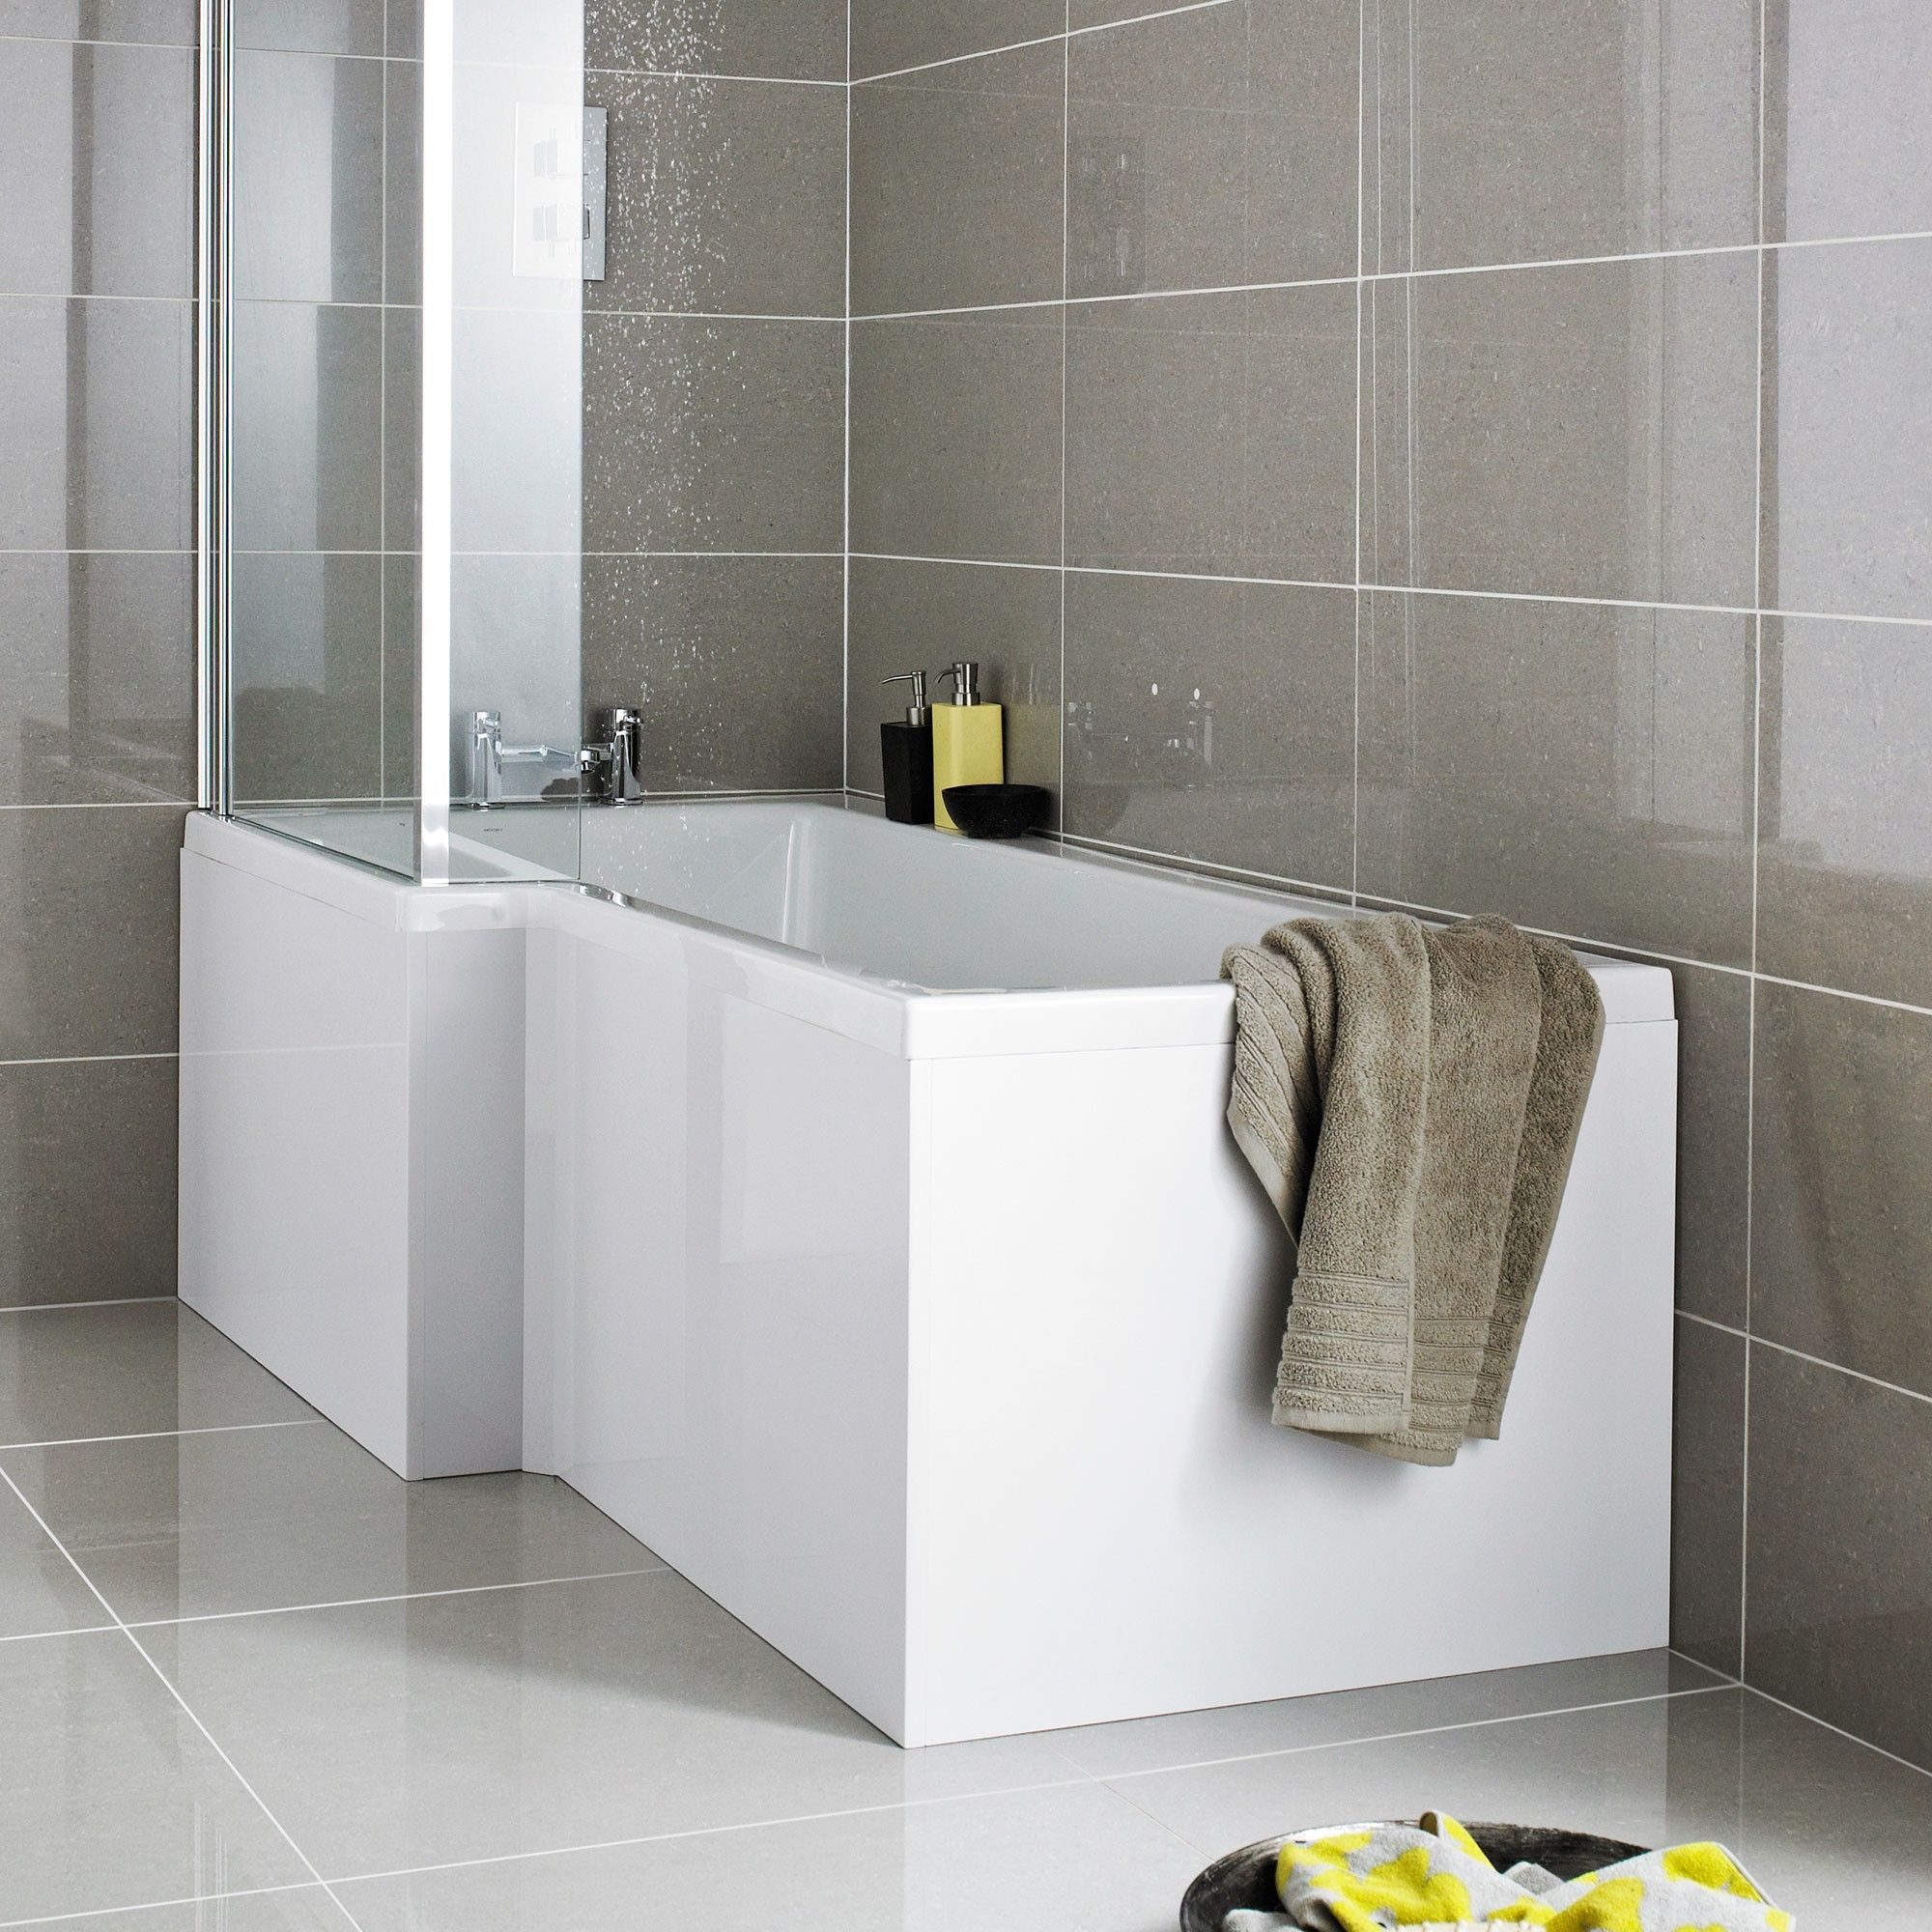 acrylic panels for bathroom walls%0A Venice Square     mm x        mm LShaped Left Handed Acrylic Shower Bath